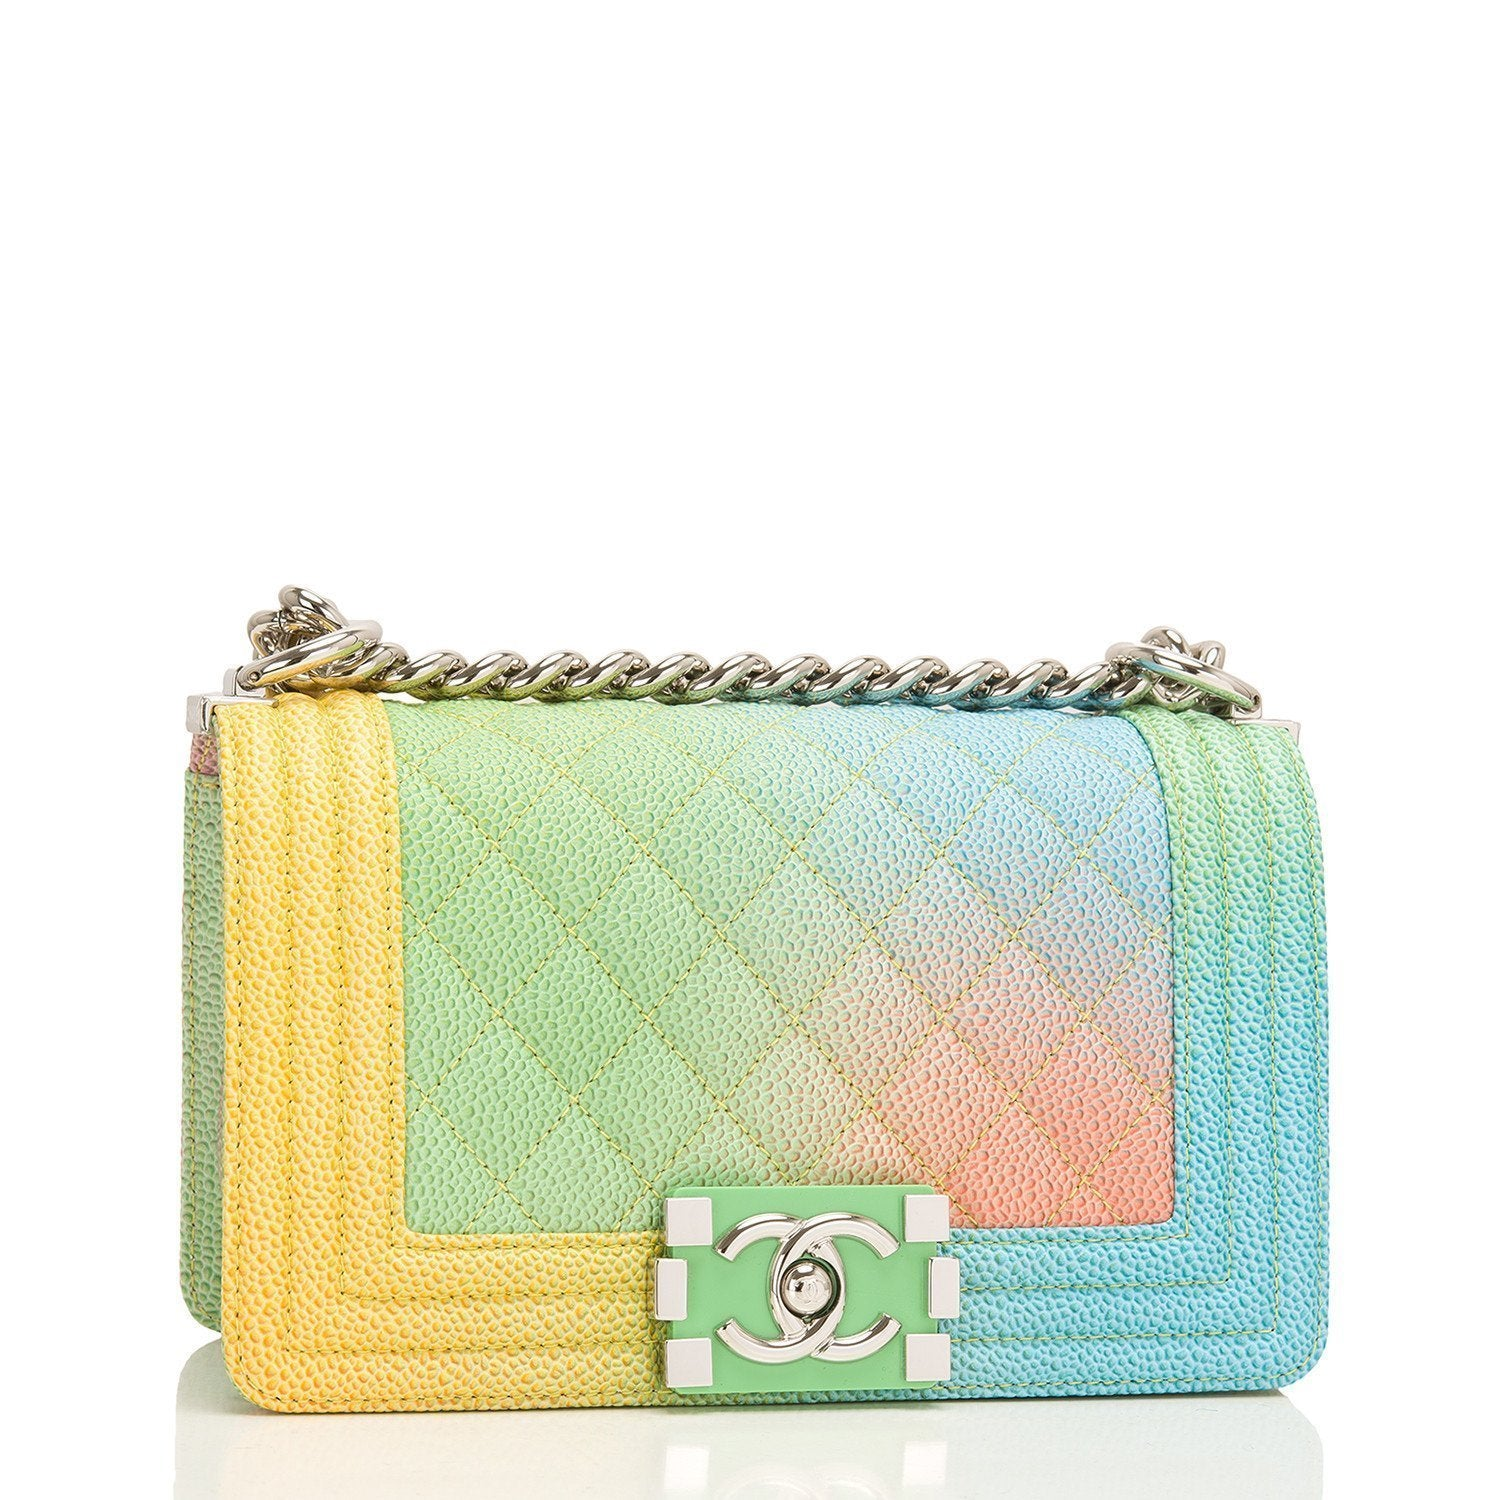 Chanel Rainbow Printed Caviar Small Boy Bag Handbags